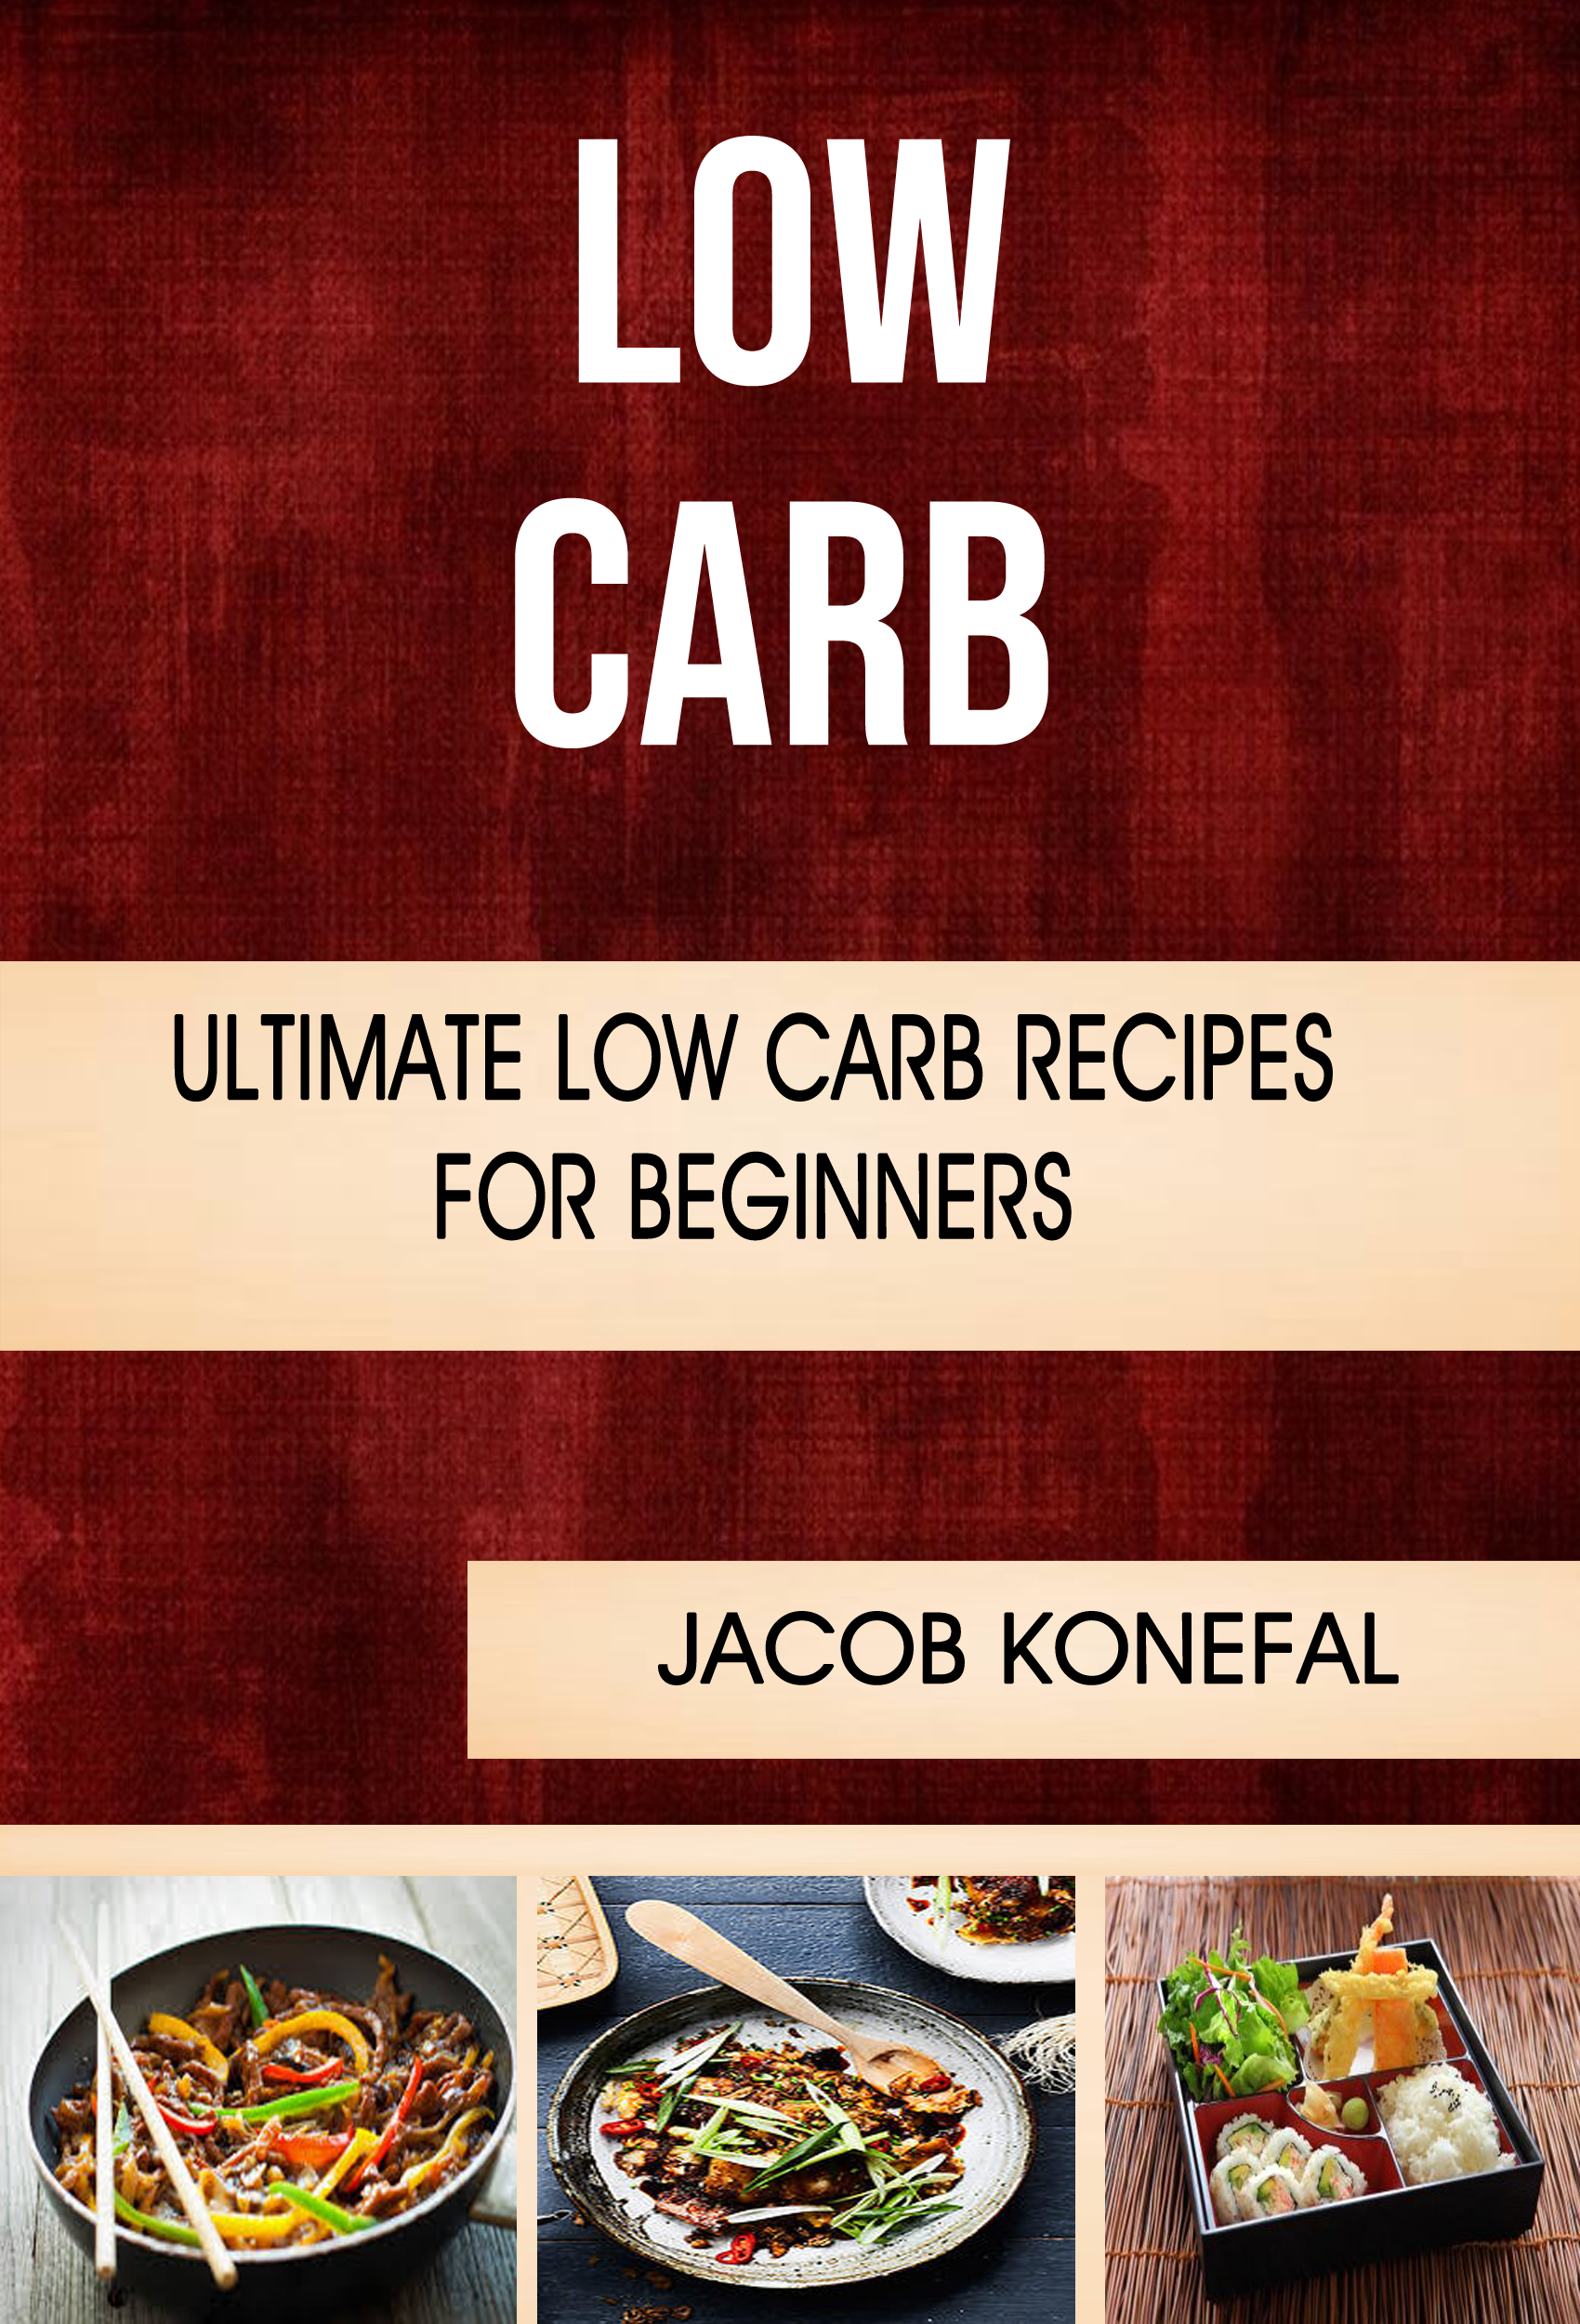 Low carb: ultimate low carb recipes for beginners